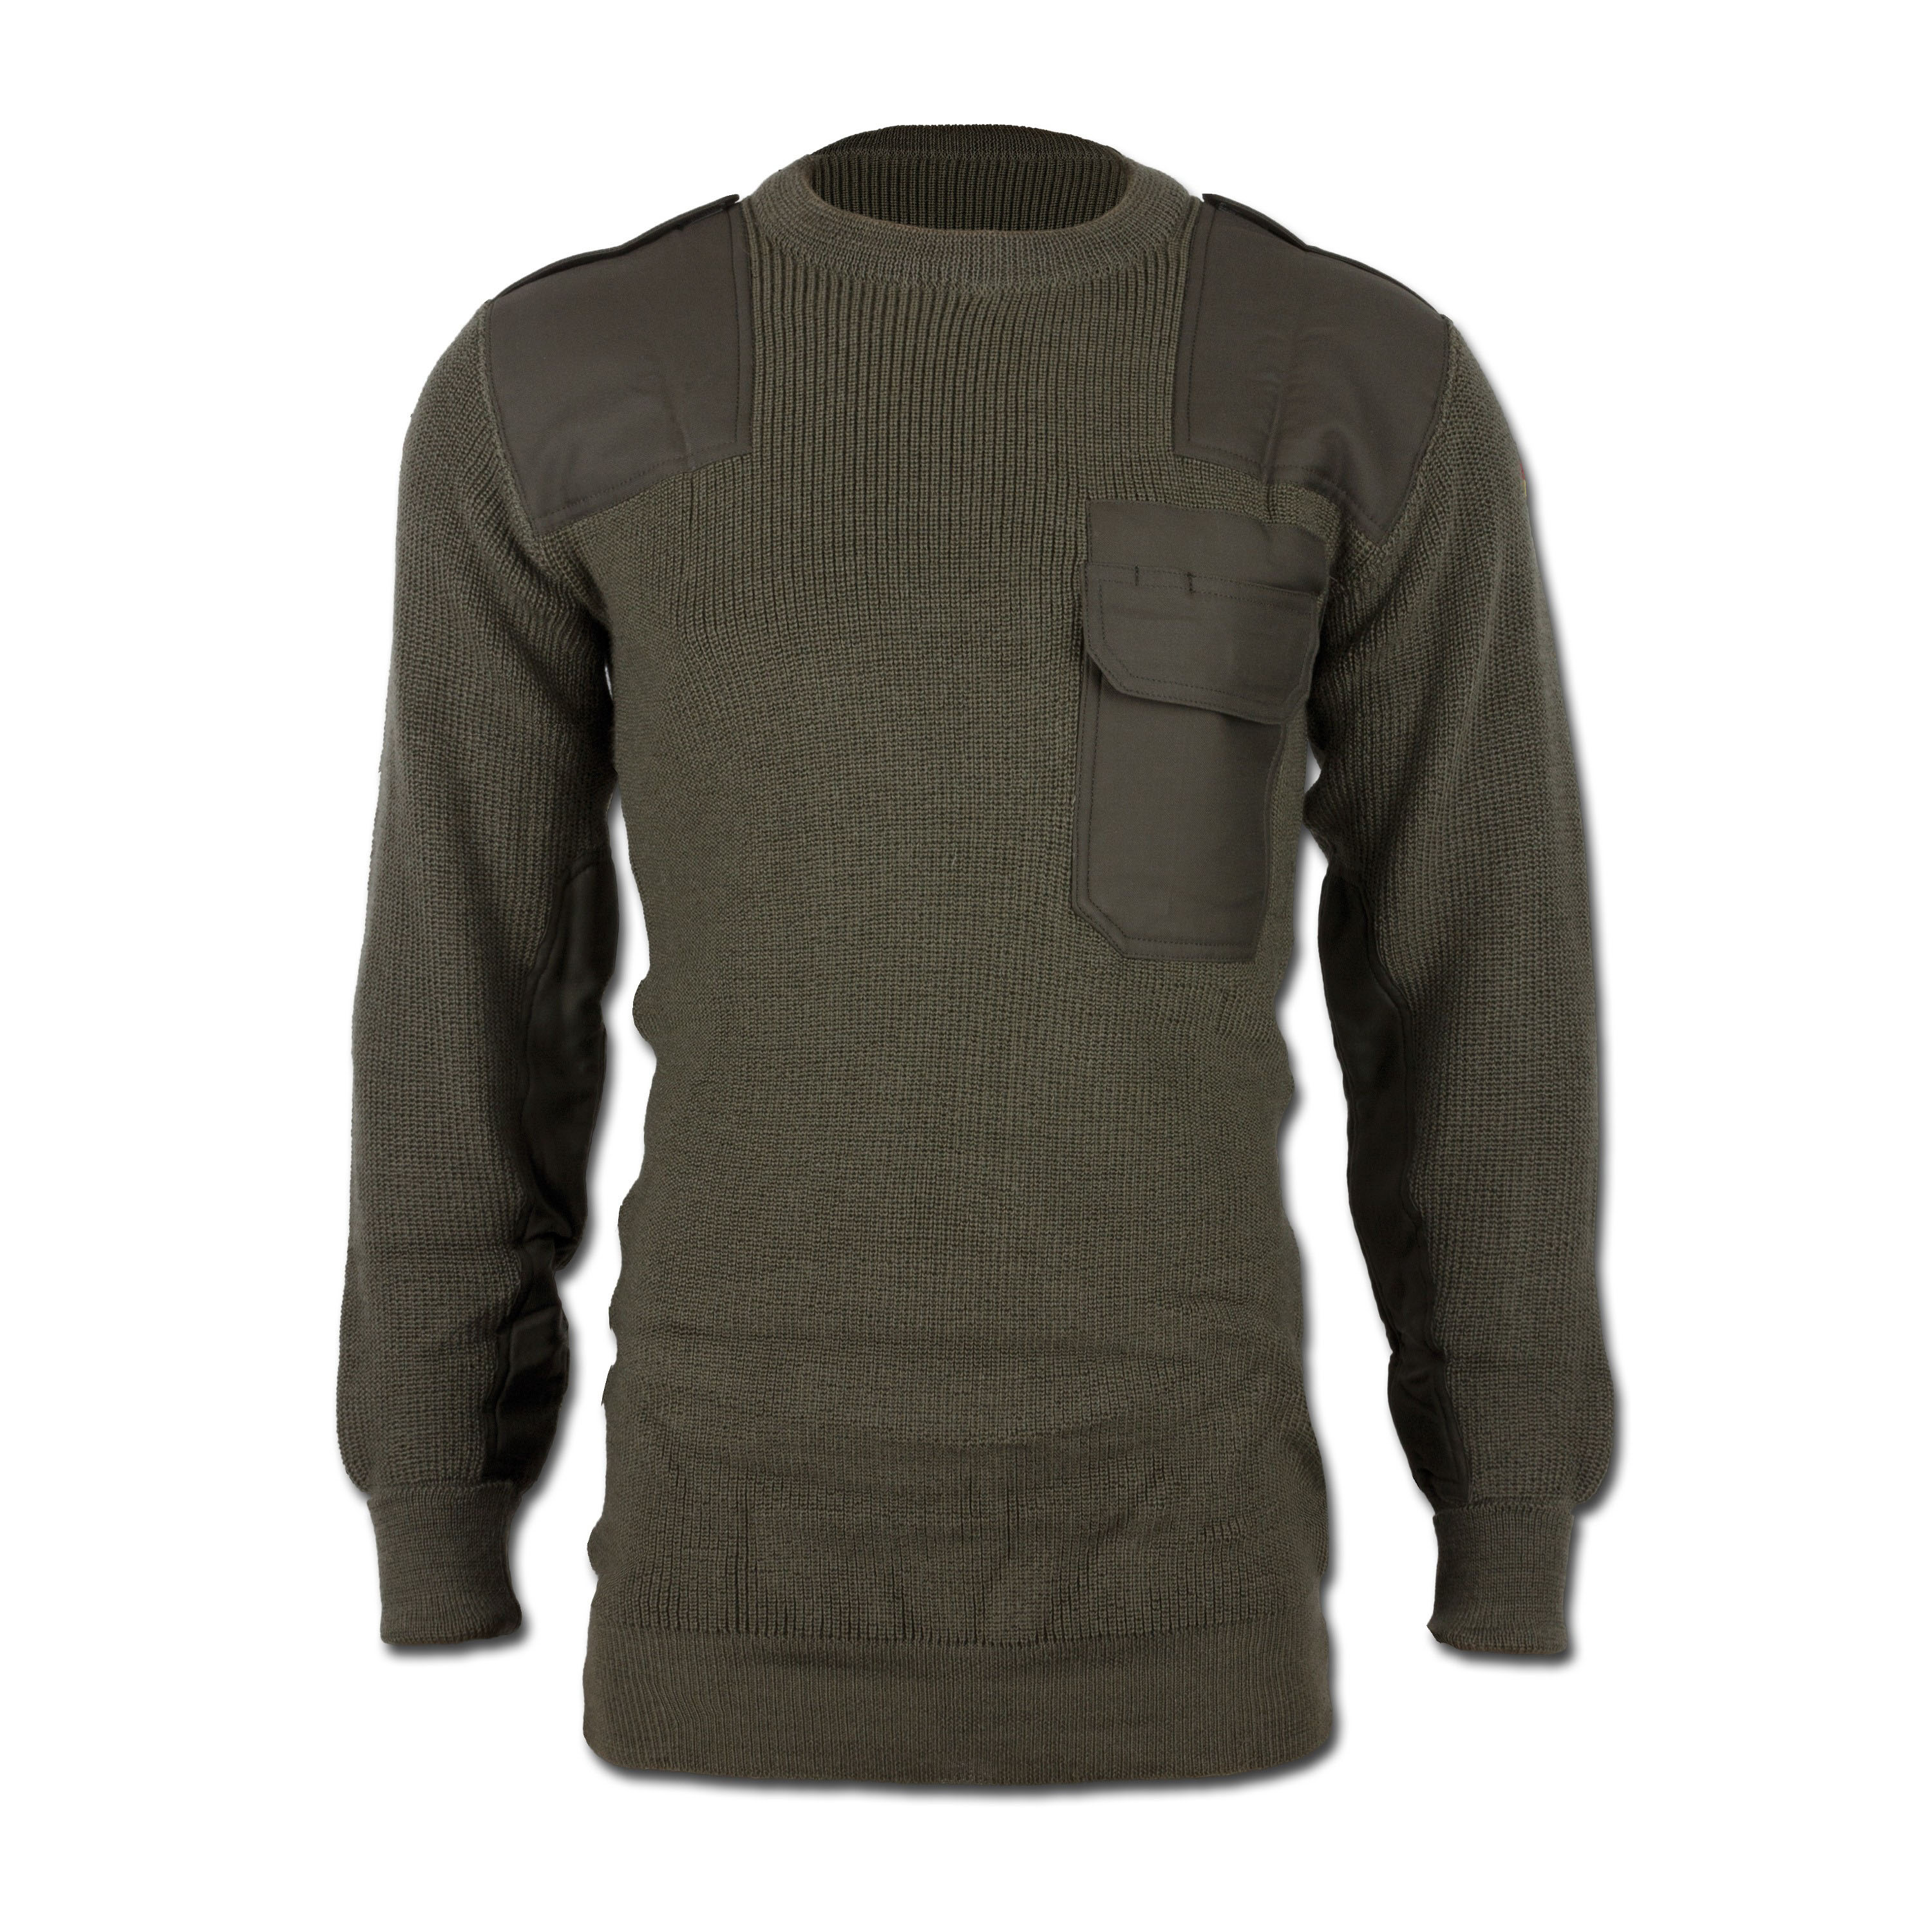 German Army Sweater New olive green